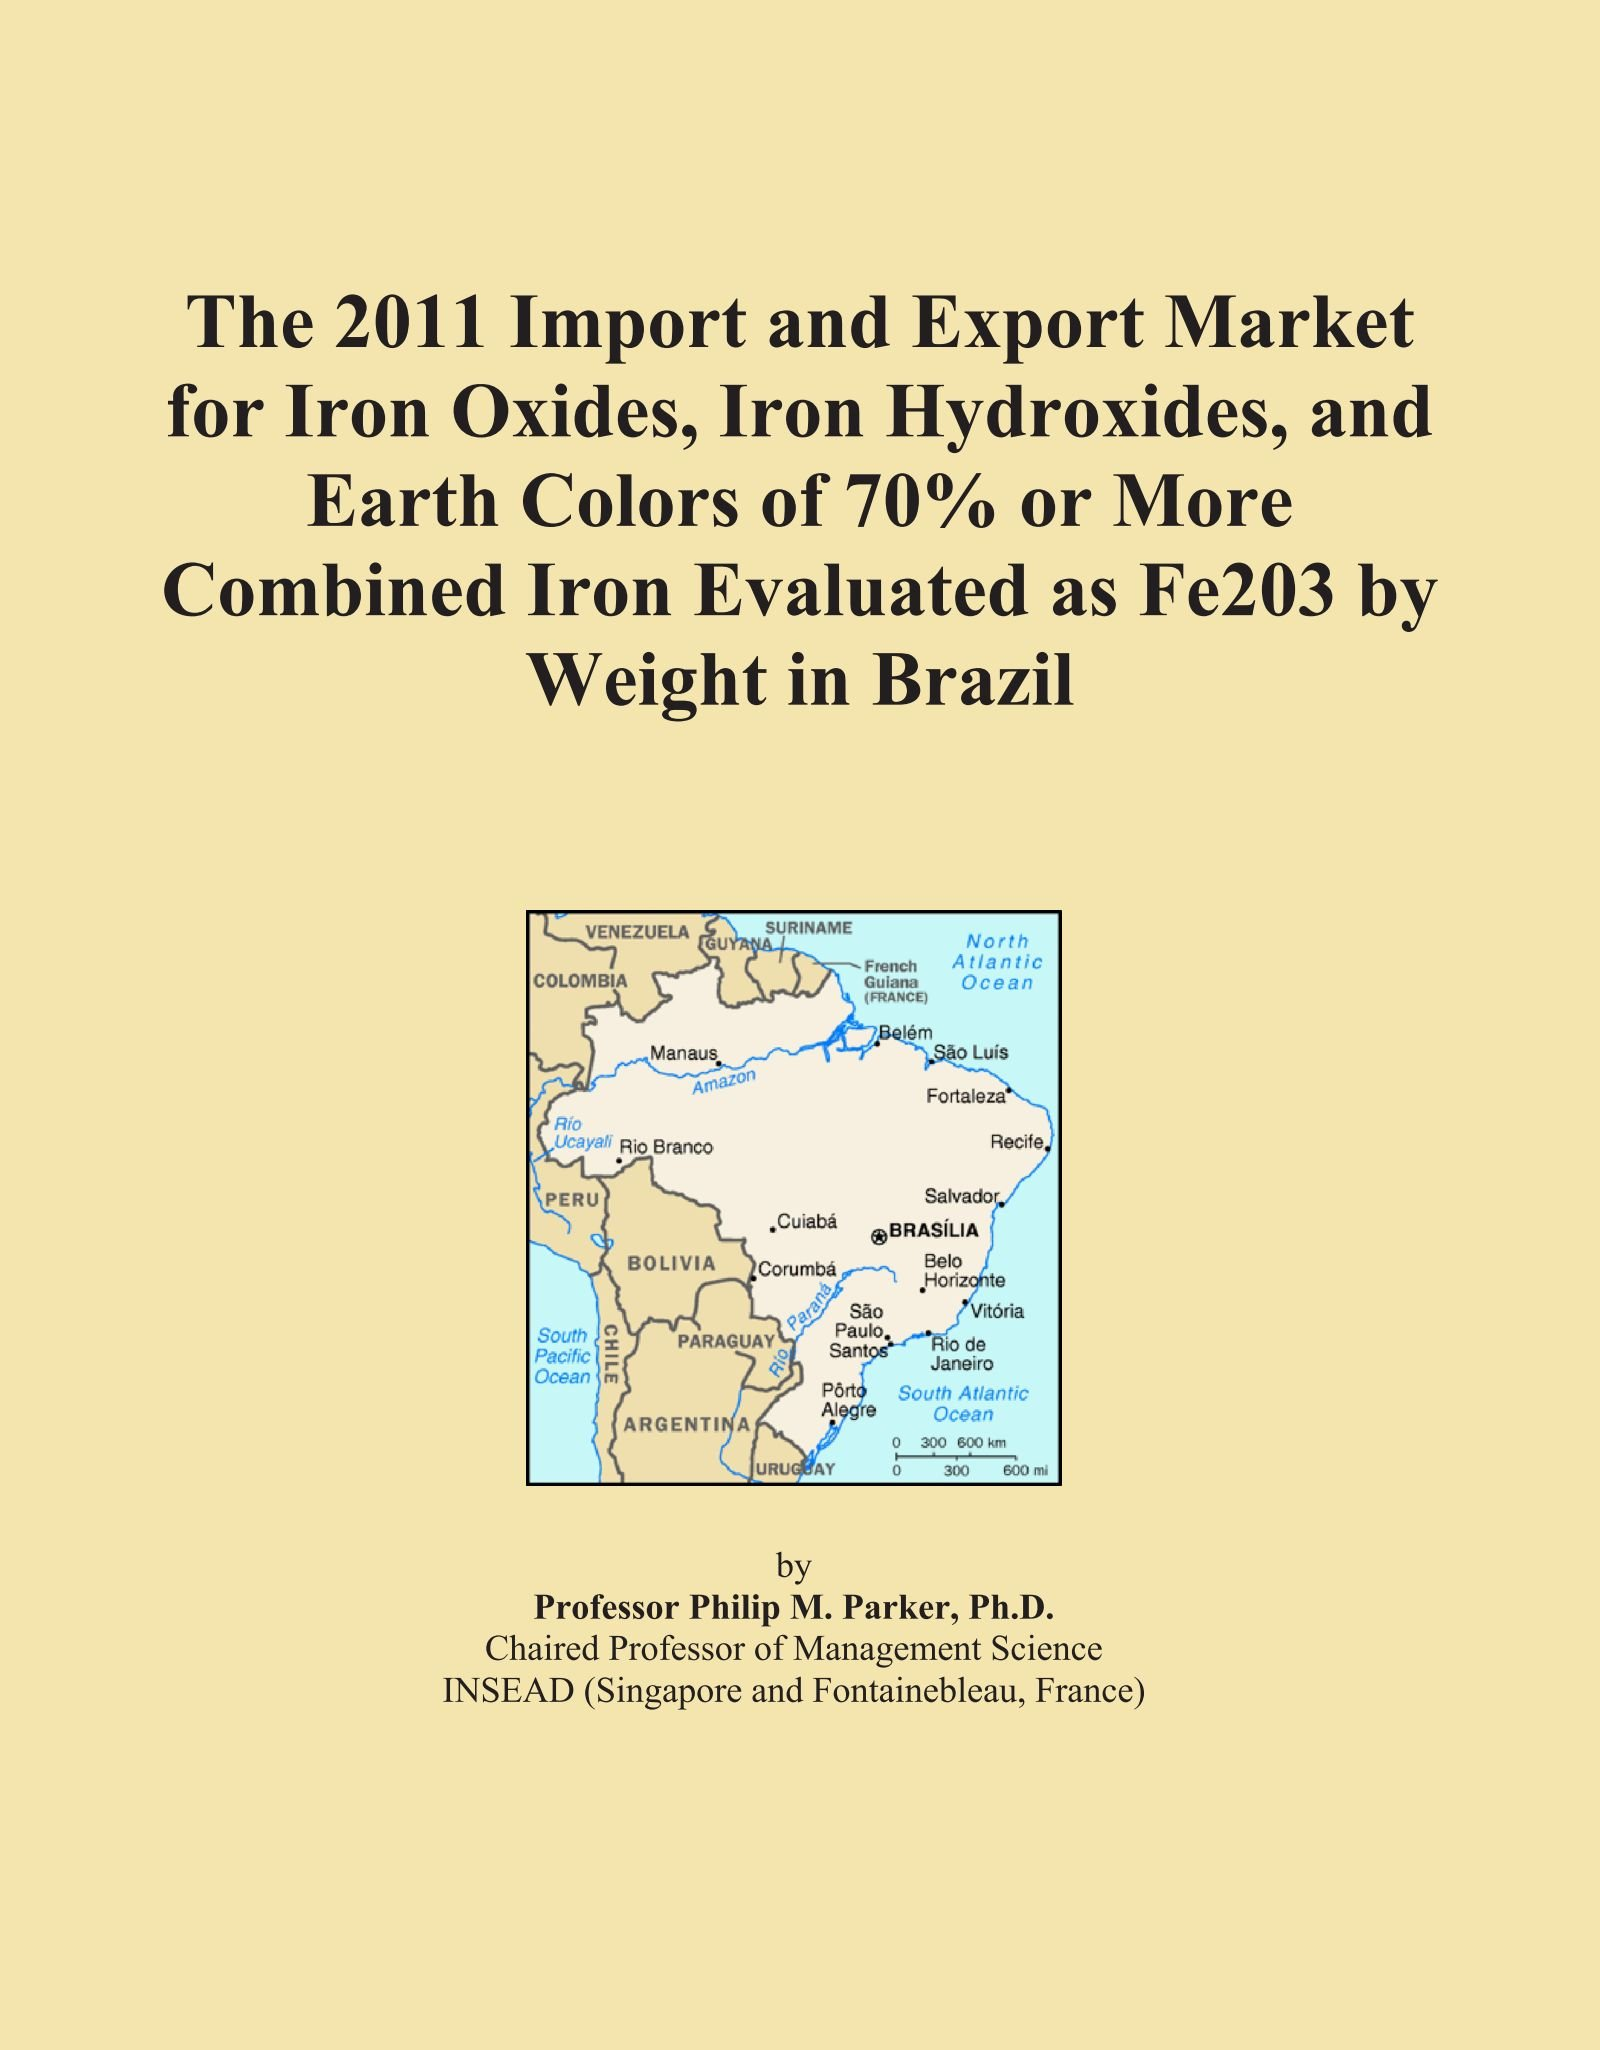 The 2011 Import and Export Market for Iron Oxides, Iron Hydroxides, and Earth Colors of 70% or More Combined Iron Evaluated as Fe203 by Weight in Brazil PDF